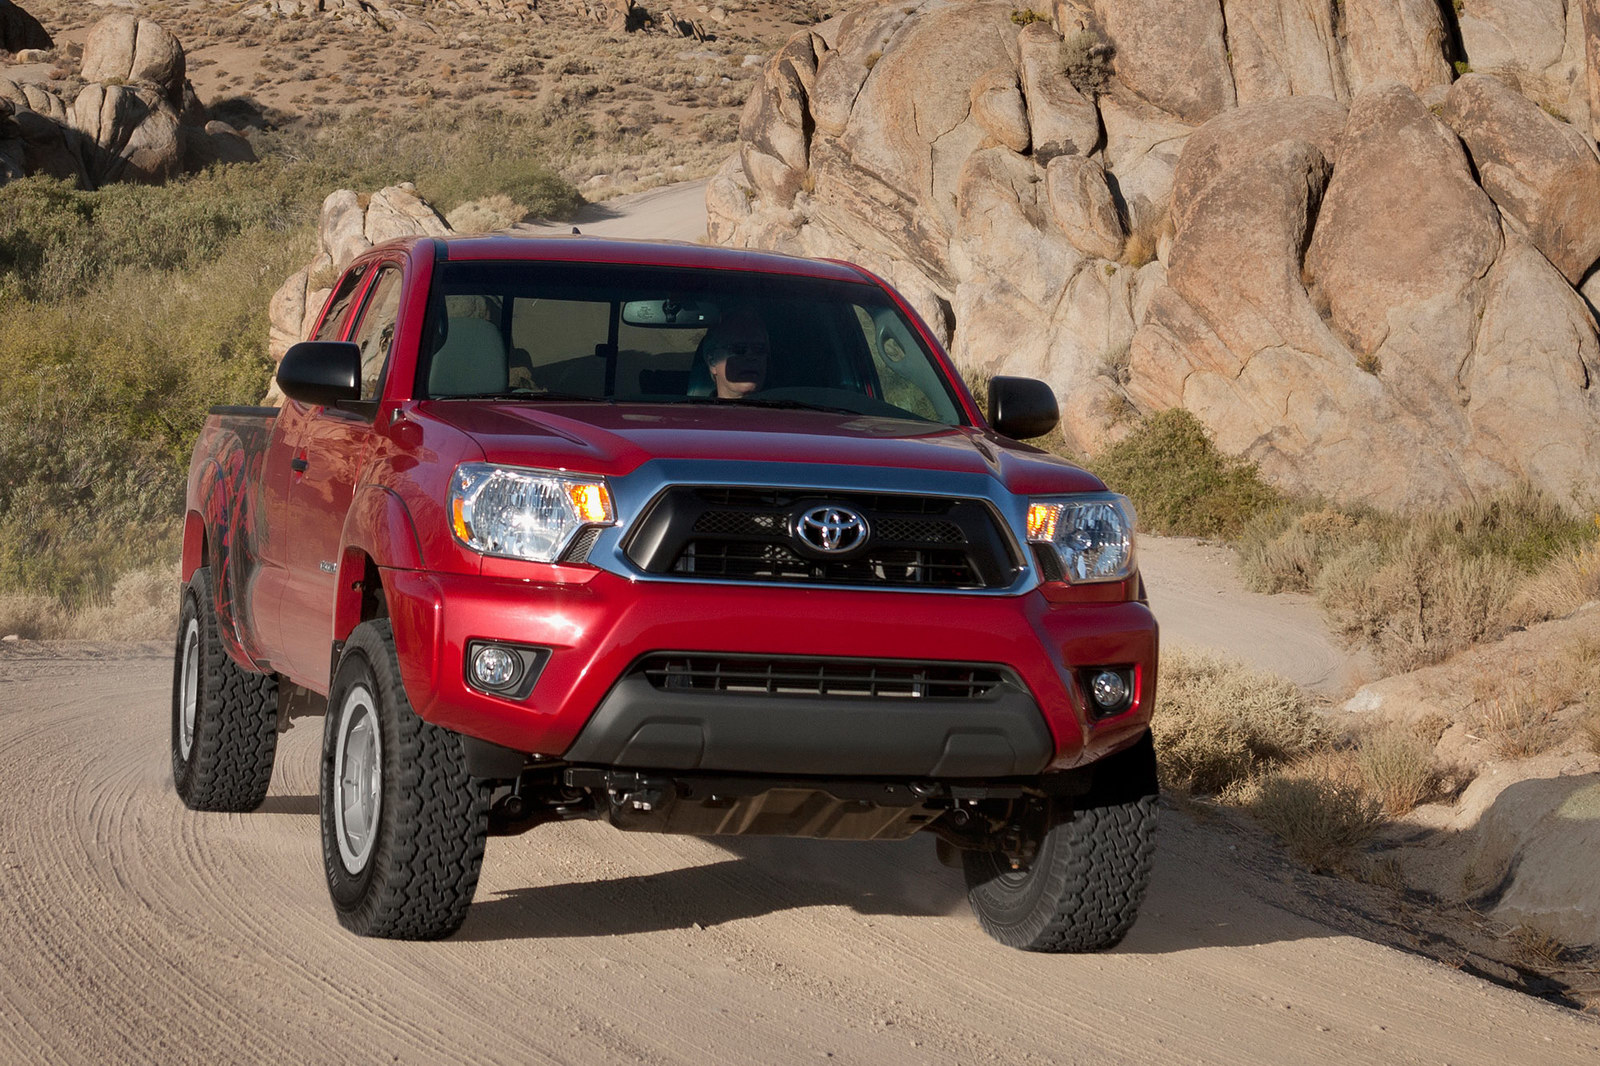 2012 toyota tacoma trd t x baja edition revealed autoevolution. Black Bedroom Furniture Sets. Home Design Ideas